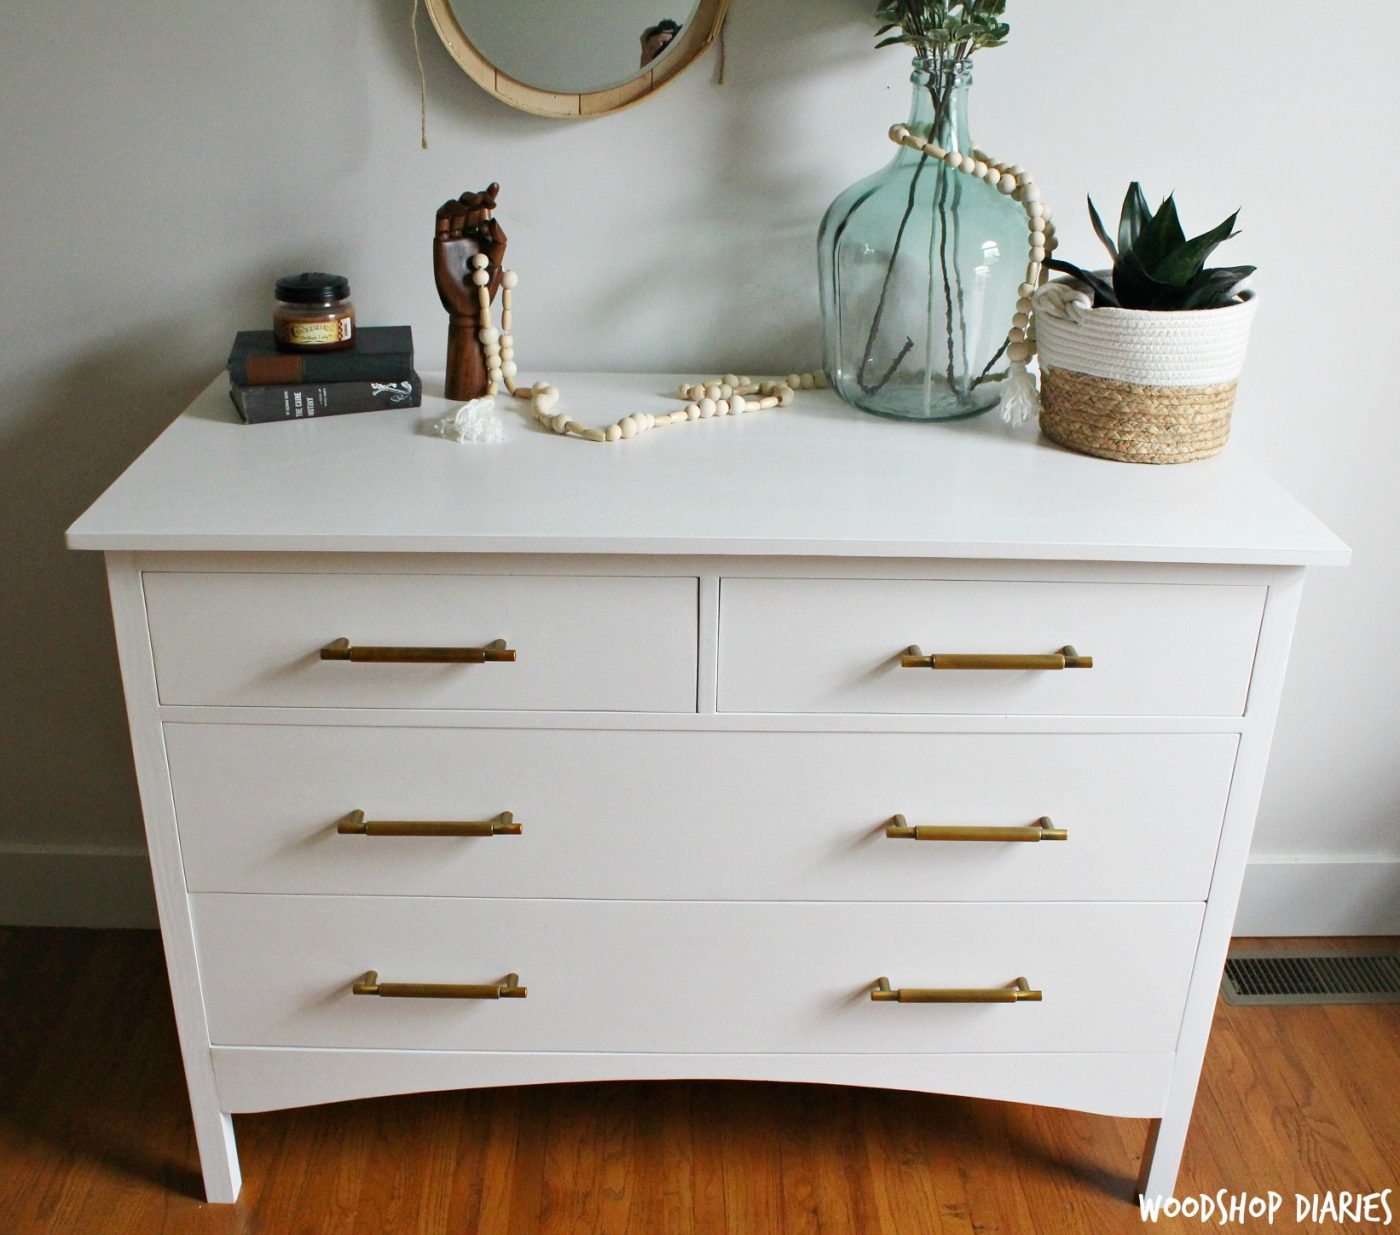 But, If Thatu0027s Not Enough, Just A Few Extra Steps Can Take This Dresser And  Make It A DIY Changing Table, Too!! (Speaking Of Changing Tables, Iu0027ve Got  Free ...